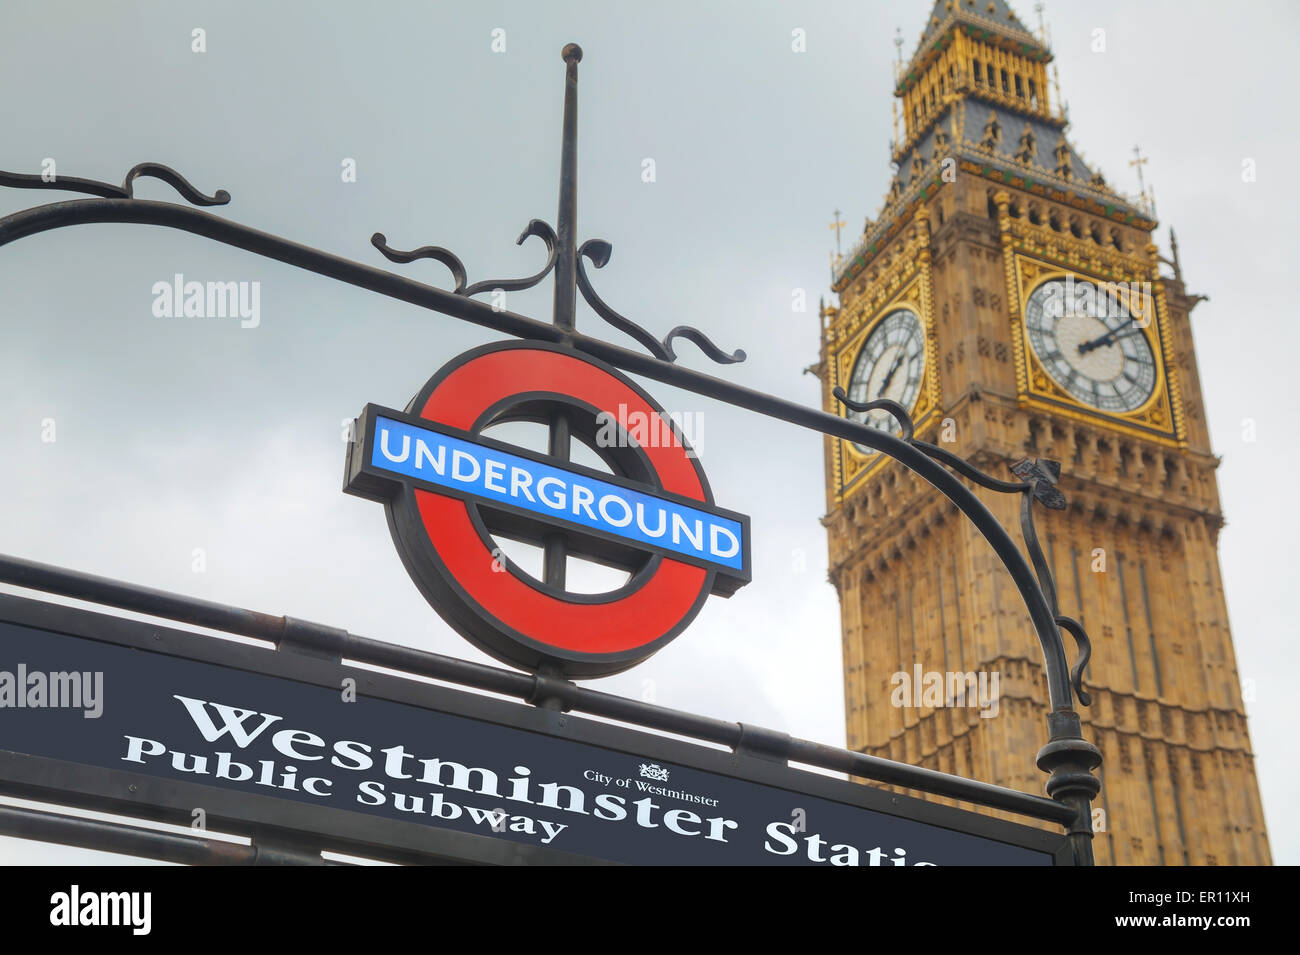 LONDON - APRIL 4: London underground sign on April 4, 2015 in London, UK. The system serves 270 stations and has - Stock Image